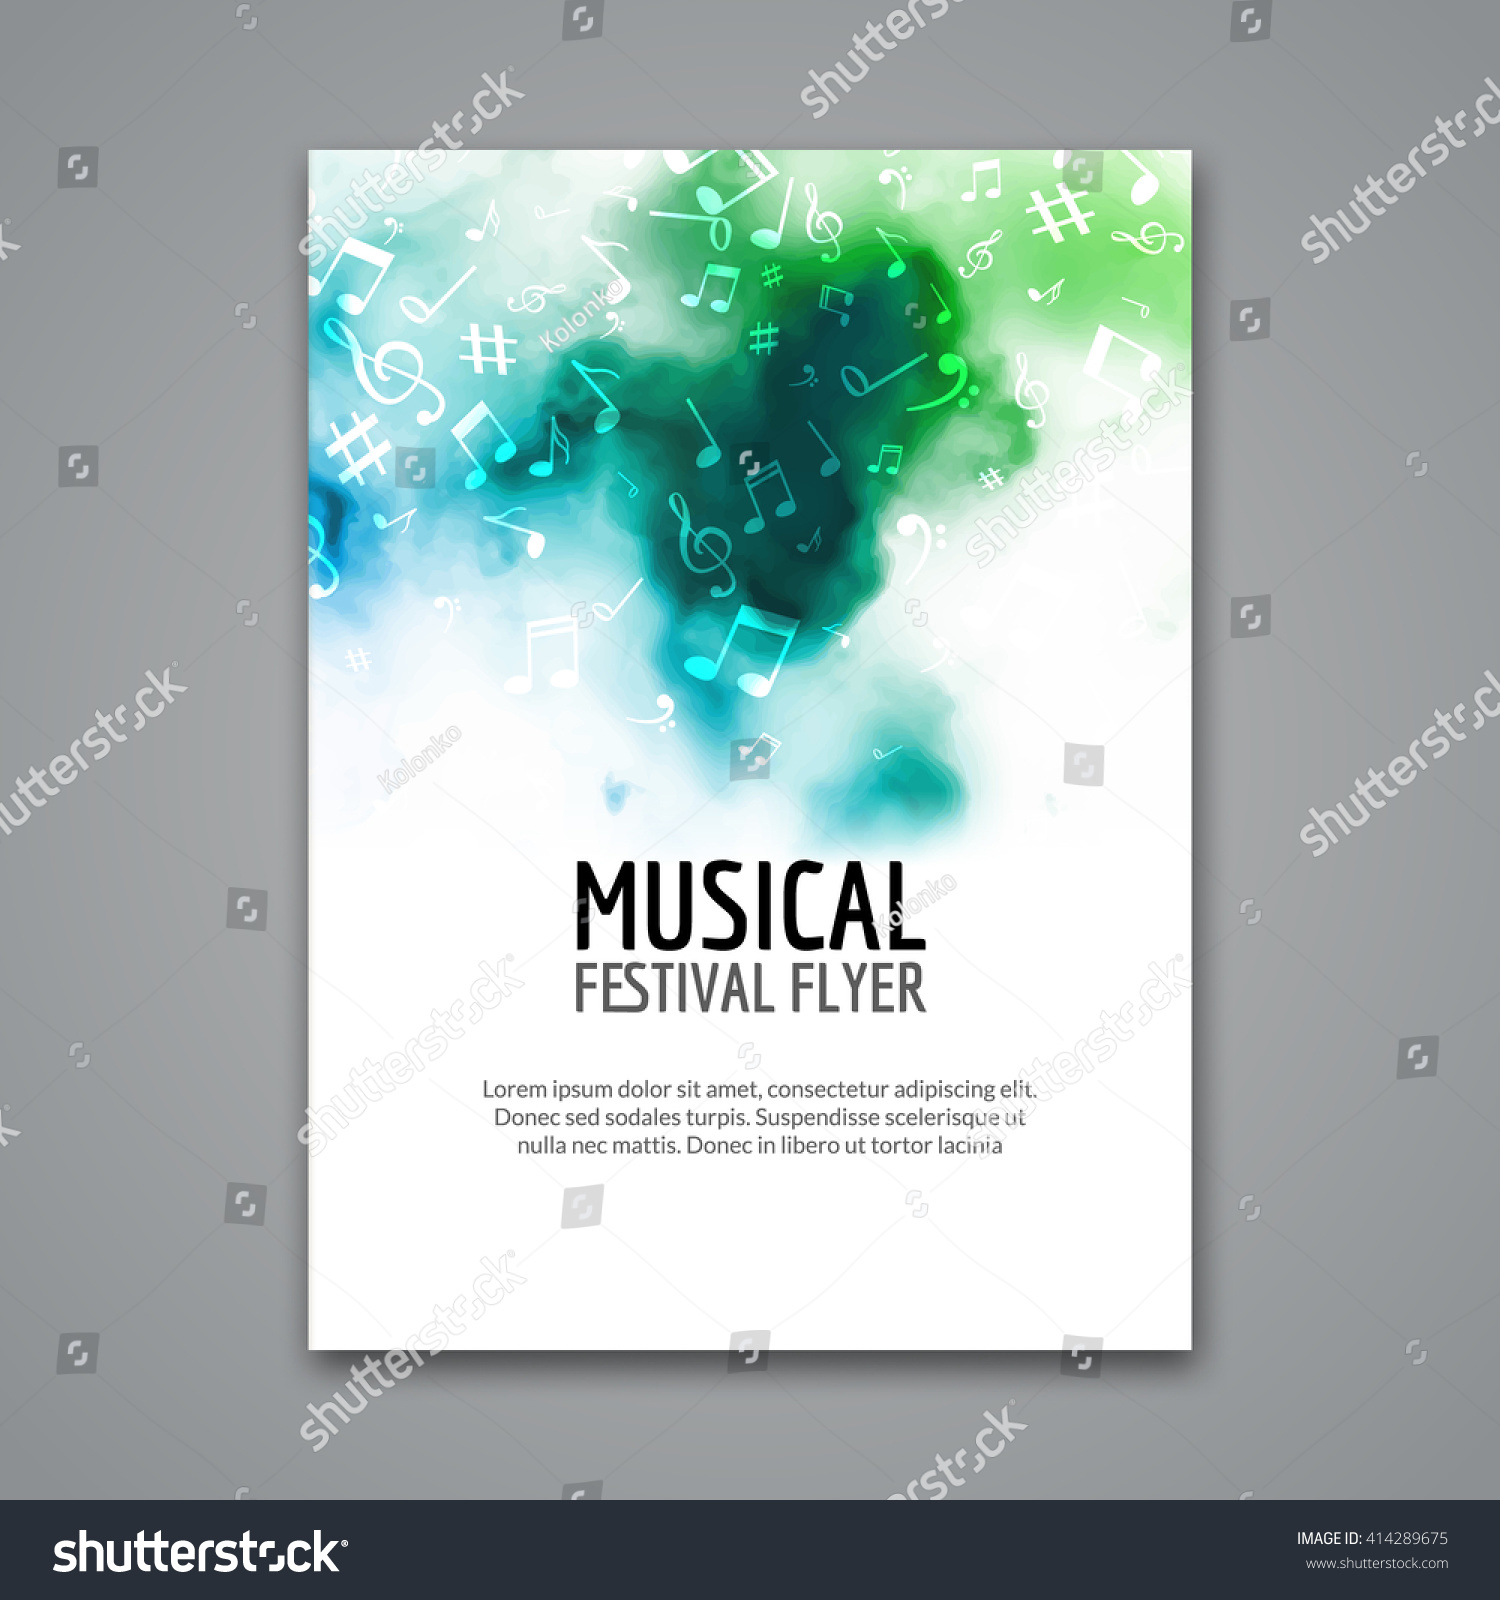 Poster design notes - Colorful Vector Music Poster Festival Concert Template Flyer Musical Flyer Choir Design Poster With Melody